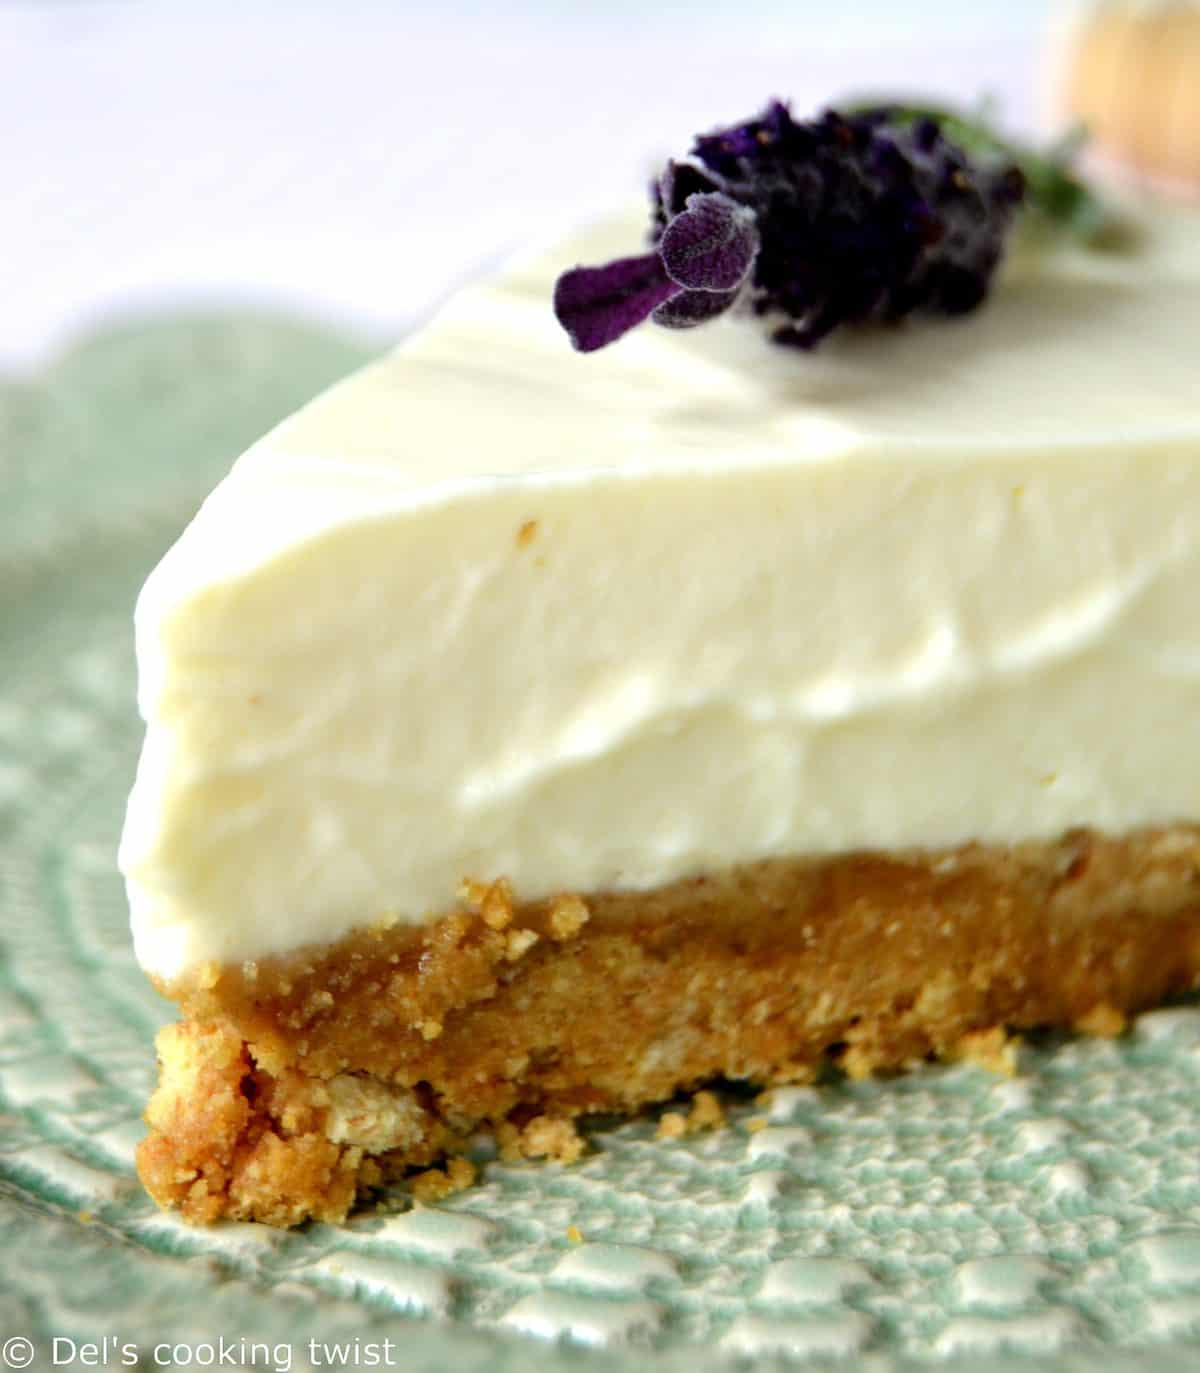 Honey lavender cheesecake